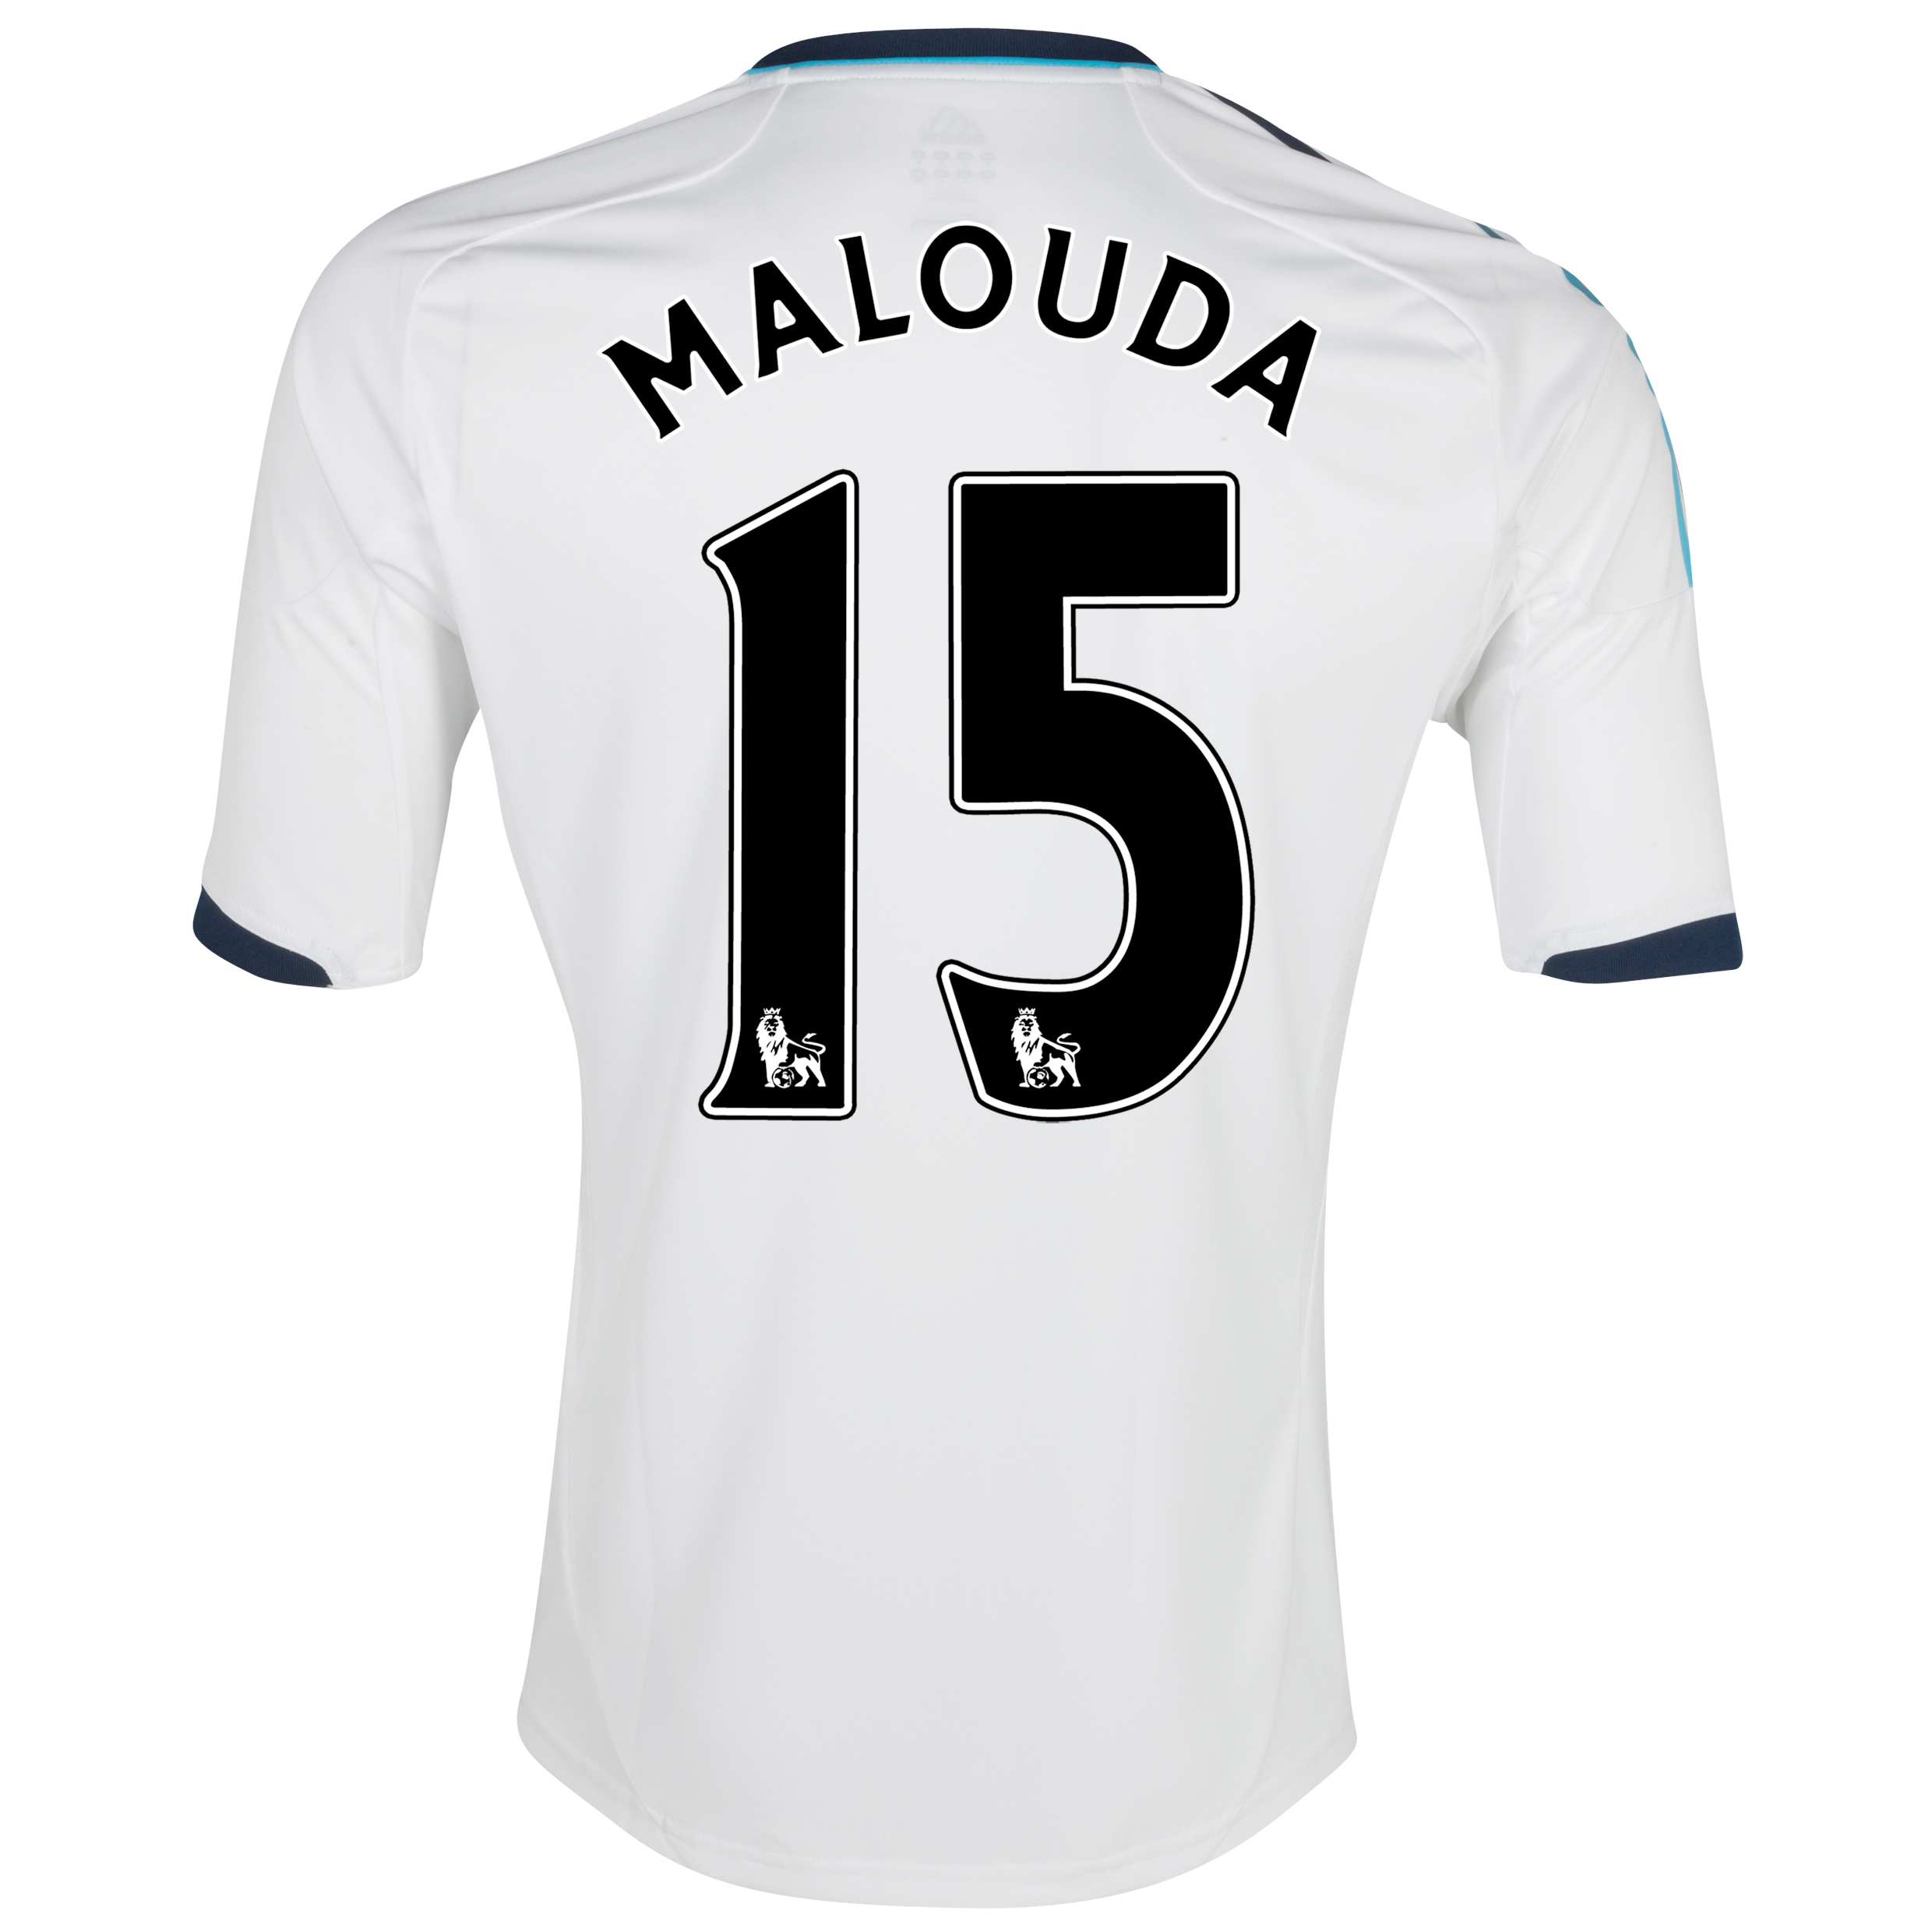 Chelsea Away Shirt 2012/13 with Malouda 15 printing